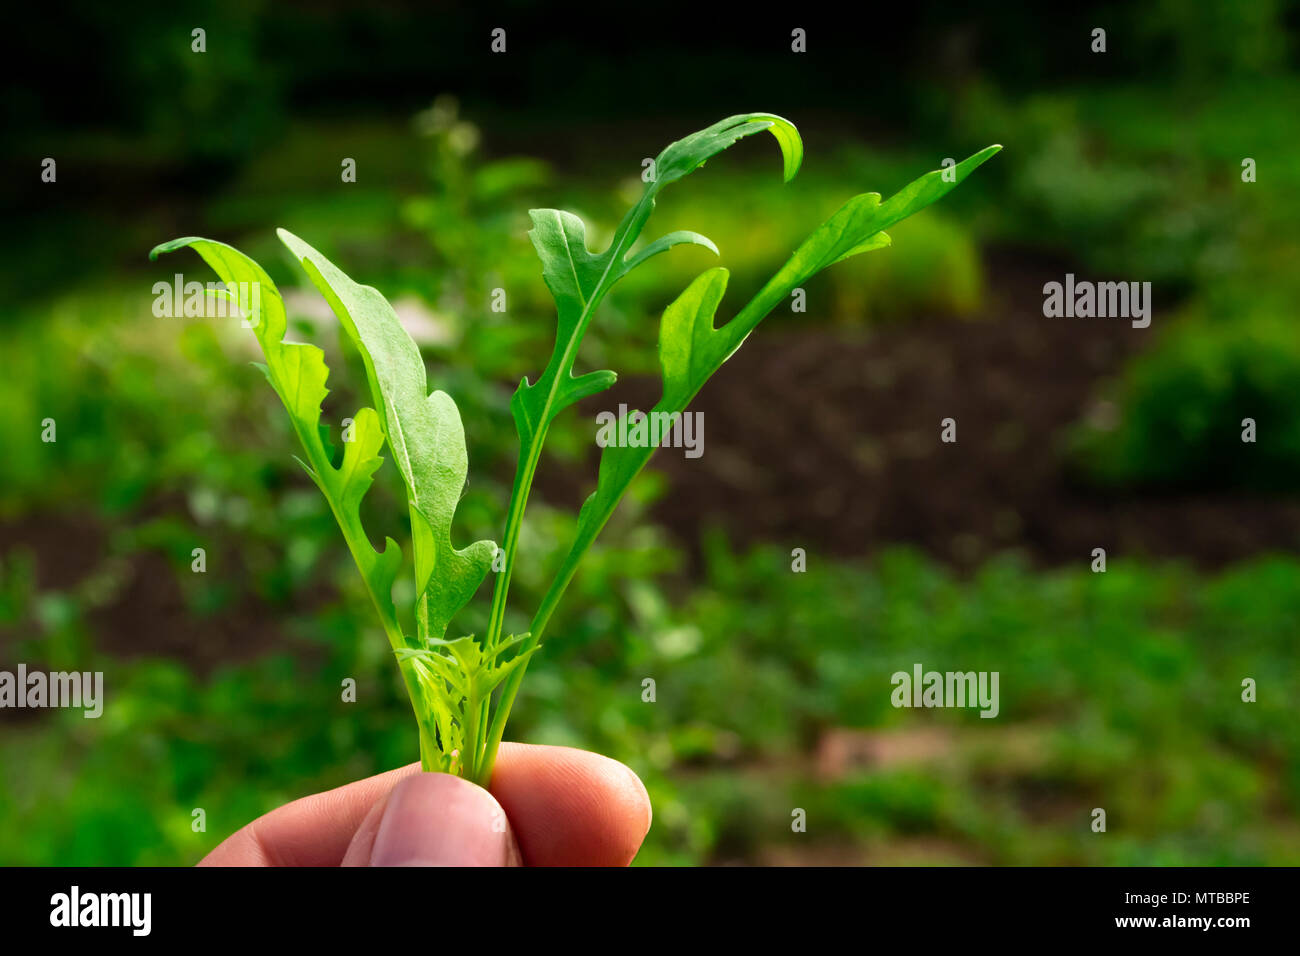 Rucola leaves macro shot in man hand on blurred background - Stock Image